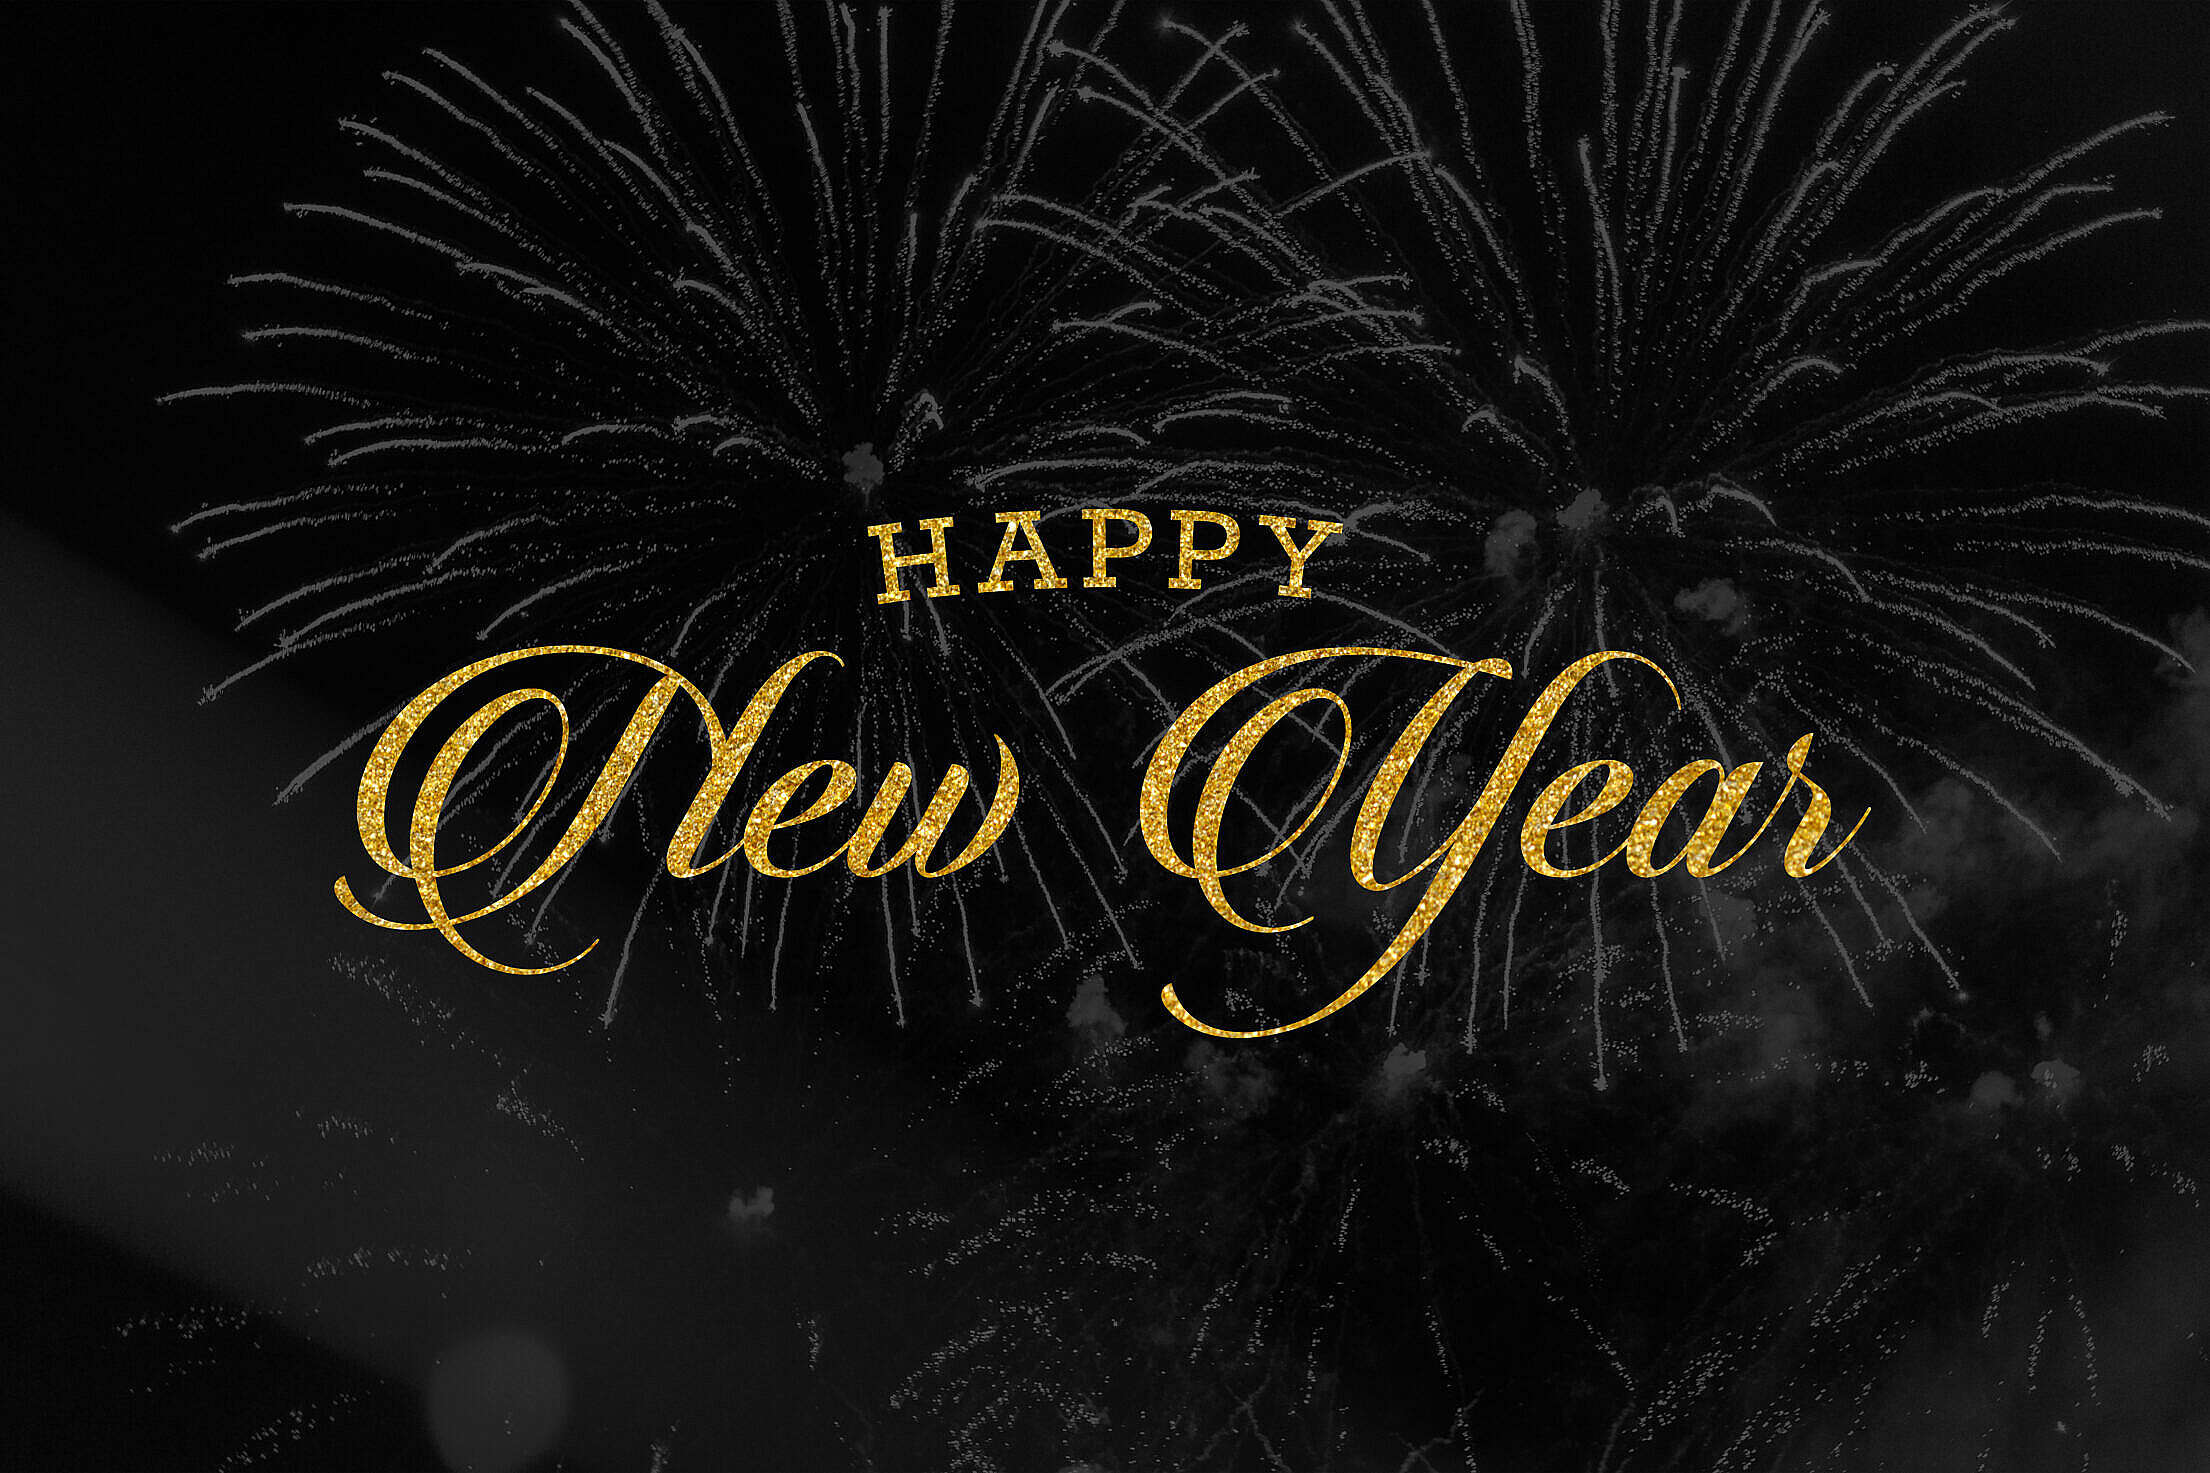 Happy New Year Golden Lettering Free Stock Photo